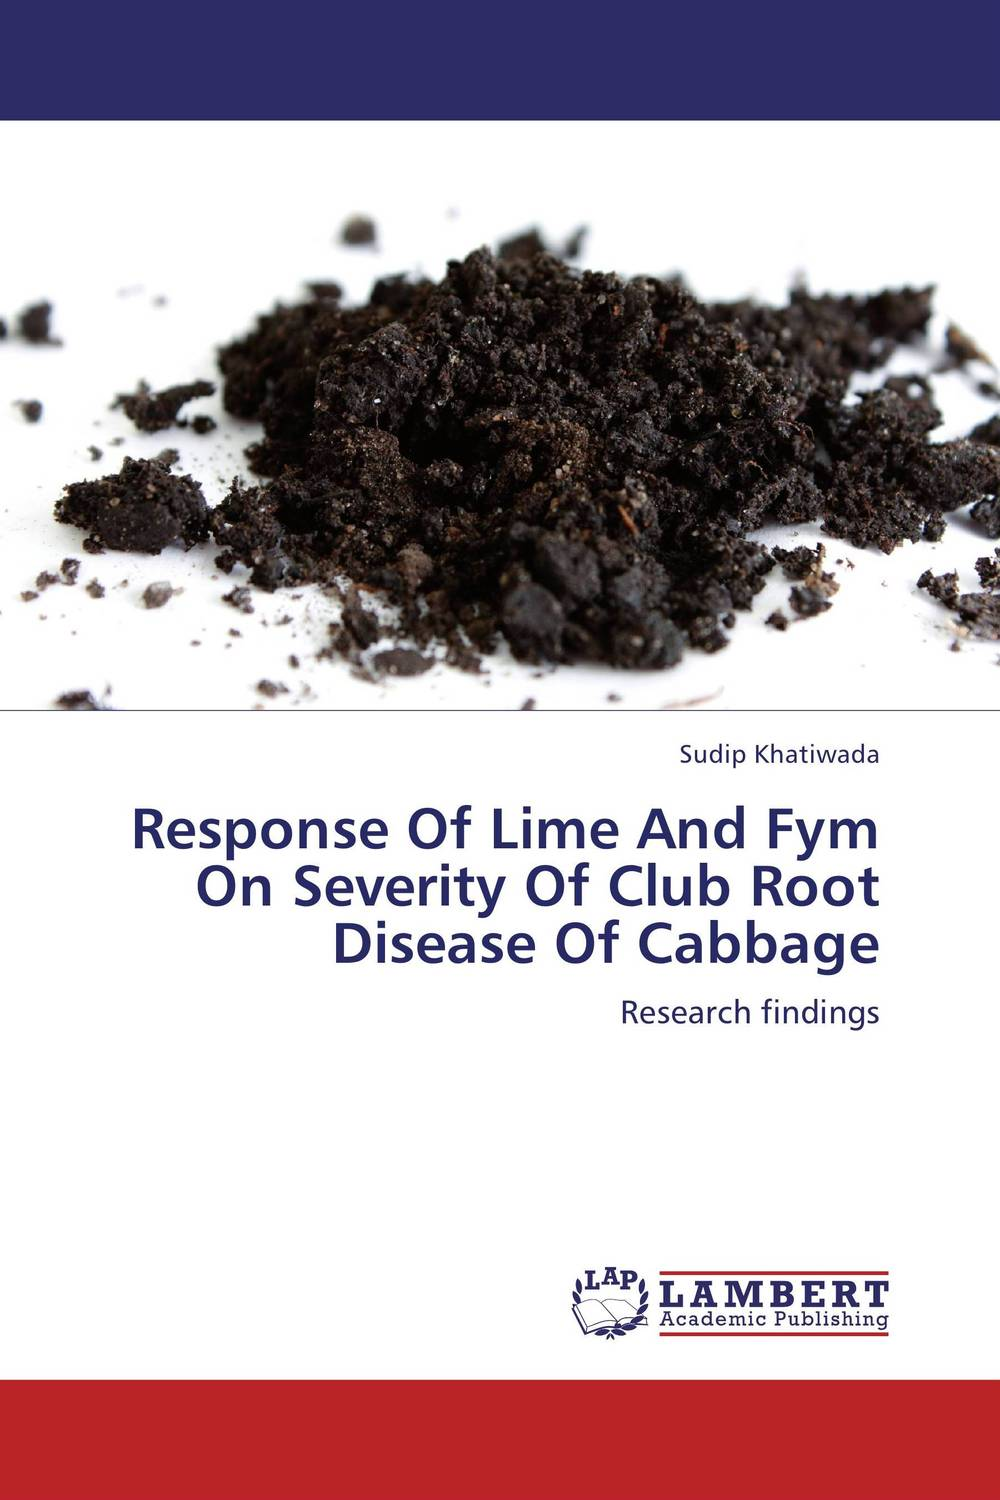 Response Of Lime And Fym On Severity Of Club Root Disease Of Cabbage the teeth with root canal students to practice root canal preparation and filling actually